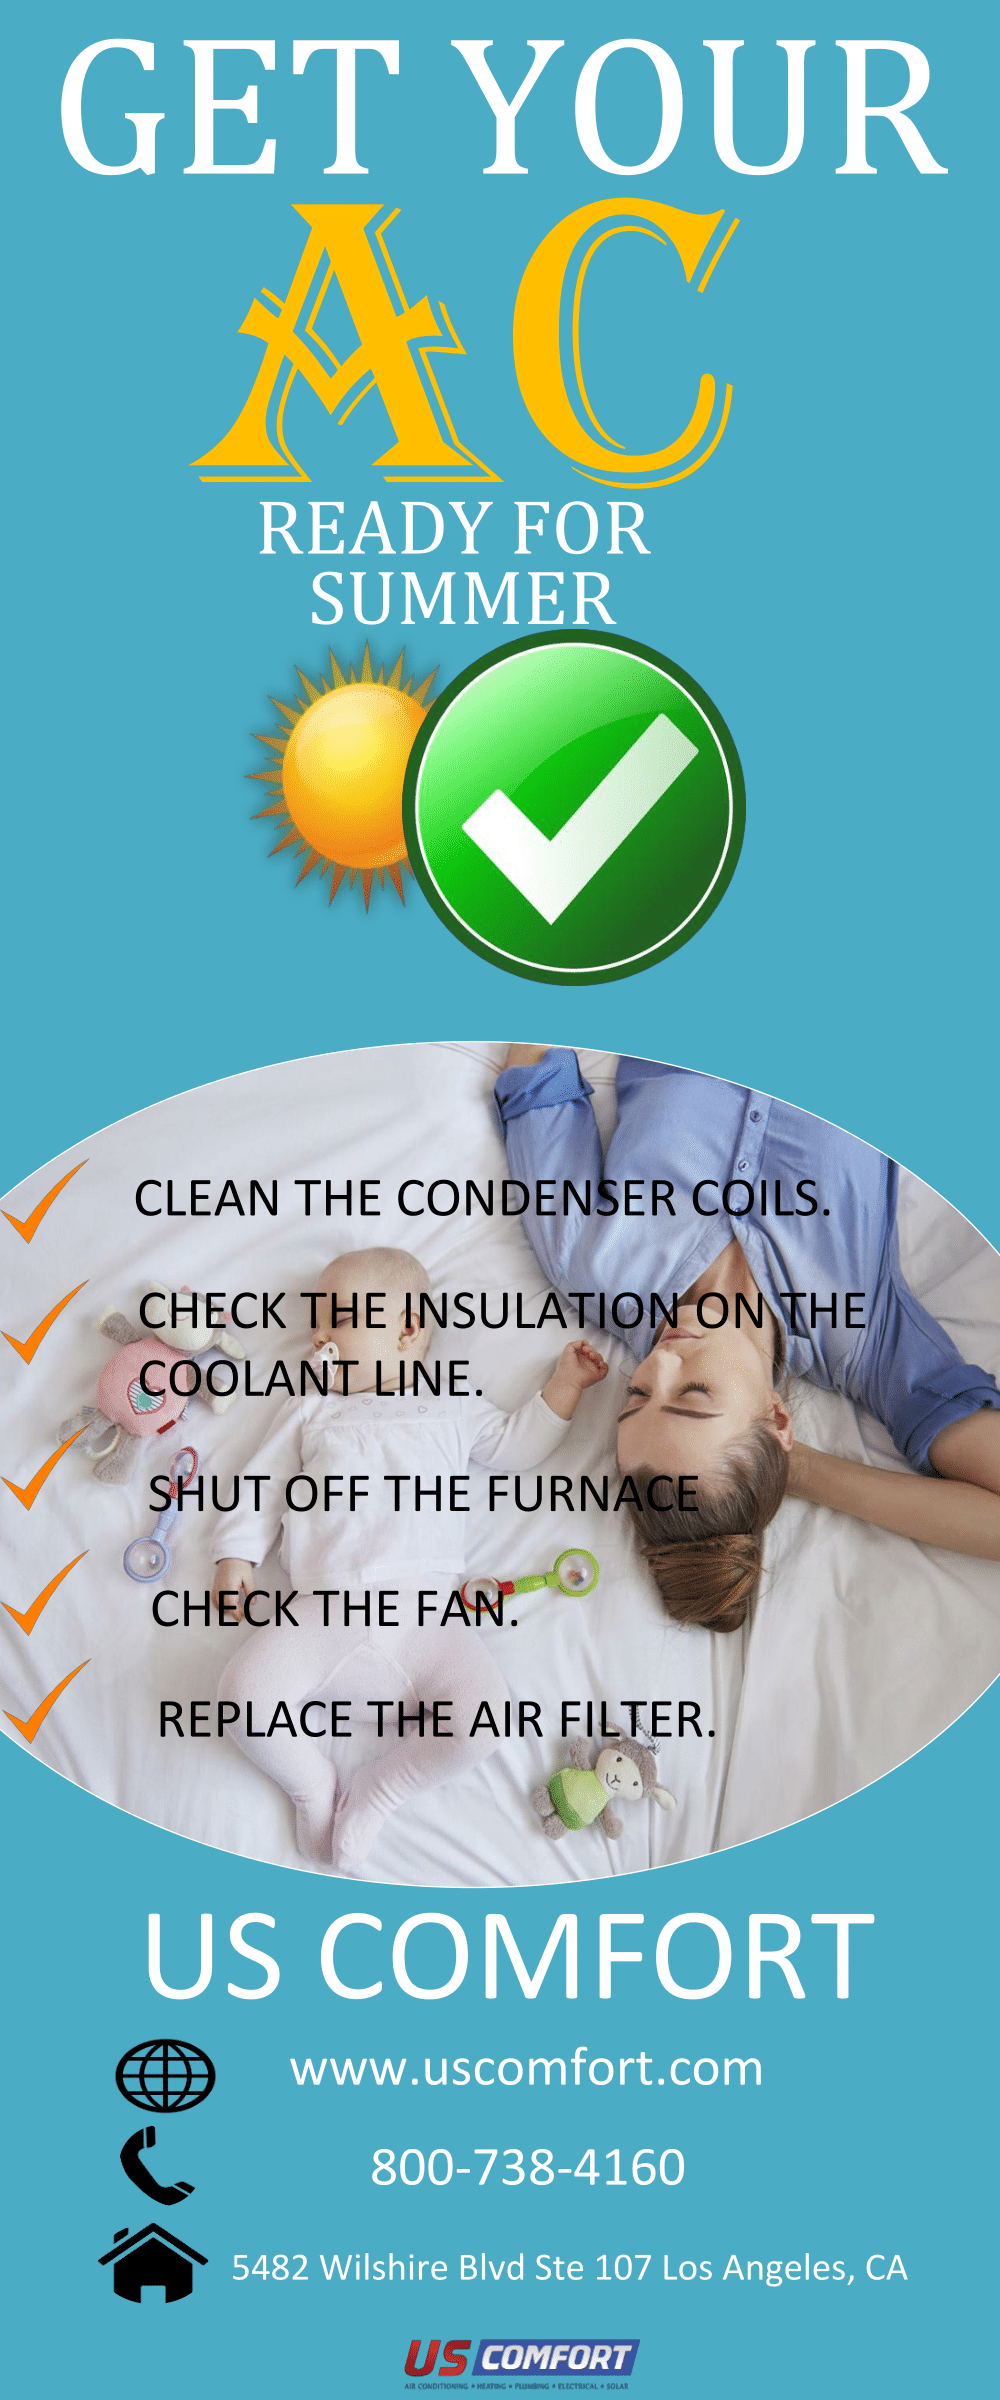 US Comfort is the air conditioning, heating, plumbing, and